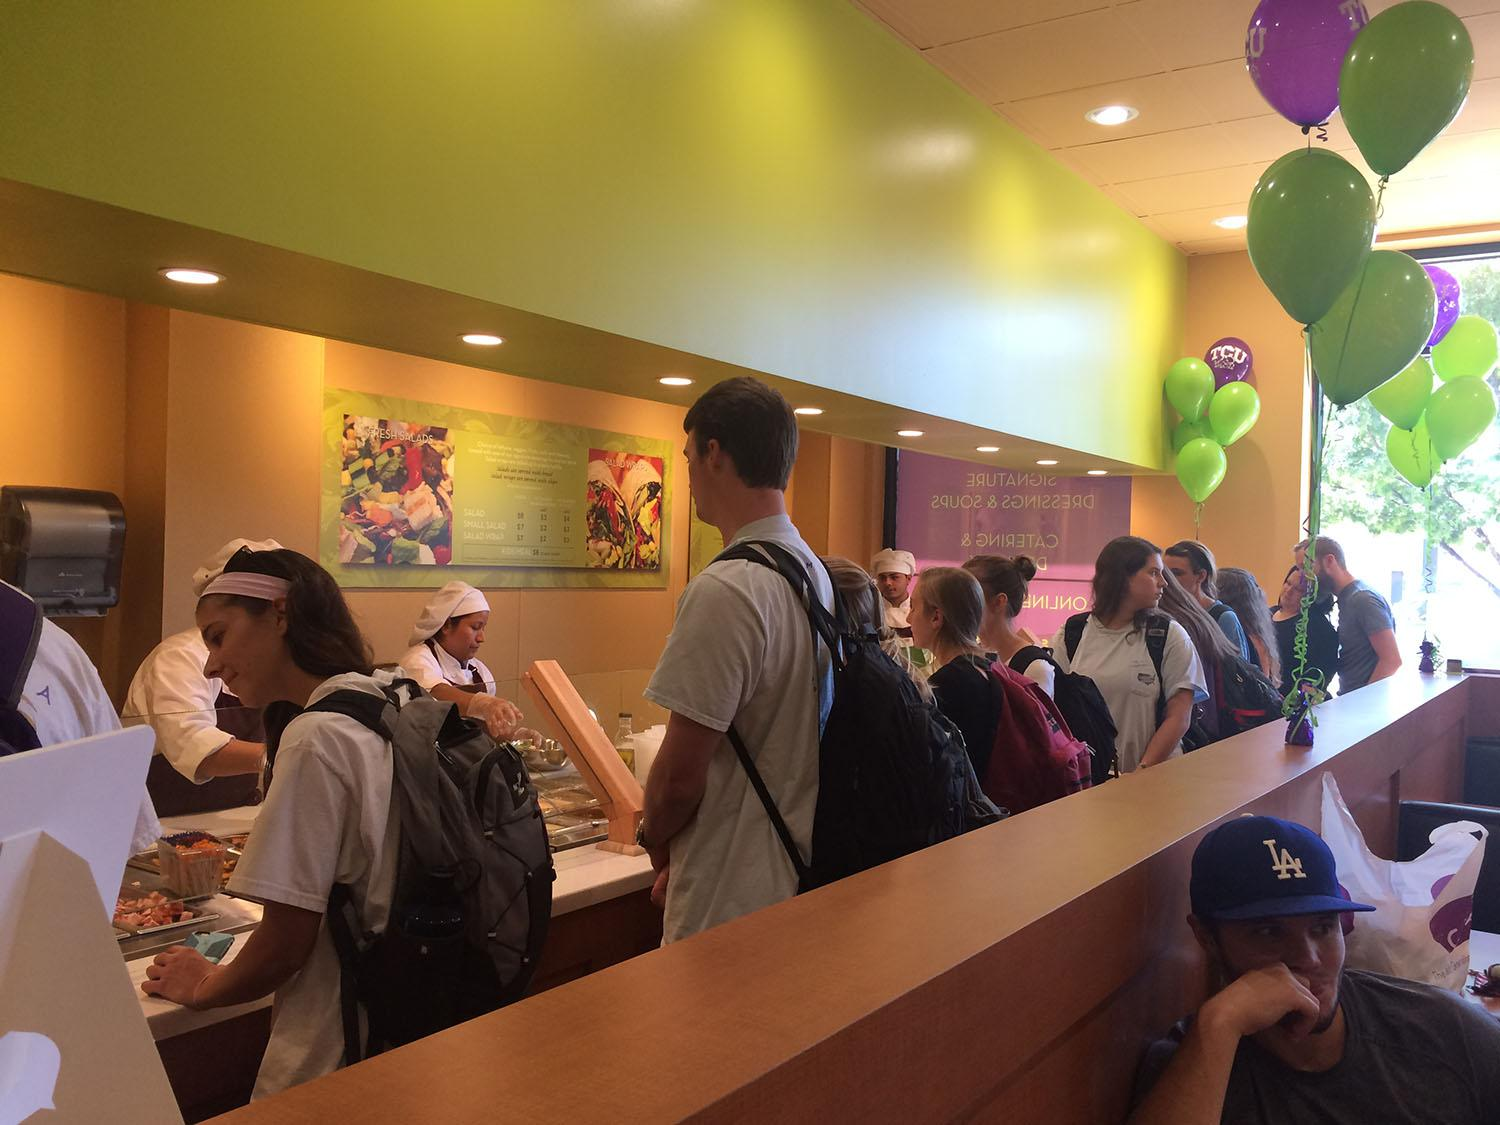 Students formed a long line at the grand opening of Berry St.'s Salata.